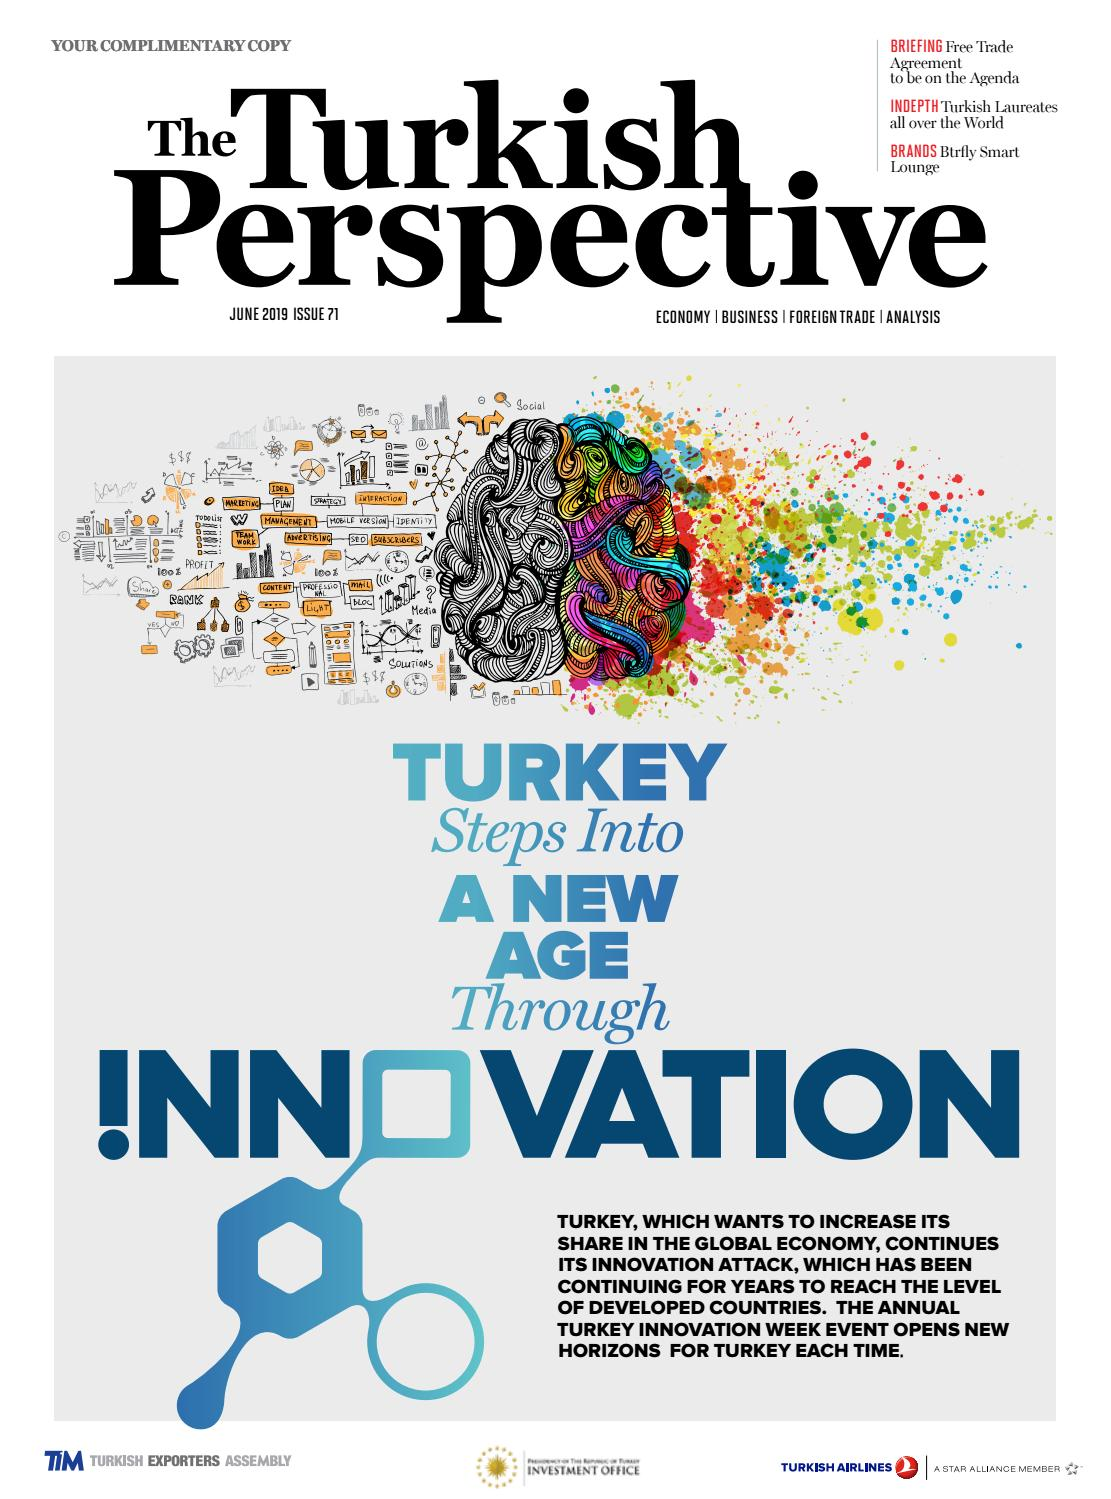 7c2973ff237 The Turkish Perspective 071 by Turkish Exporters Assembly - issuu